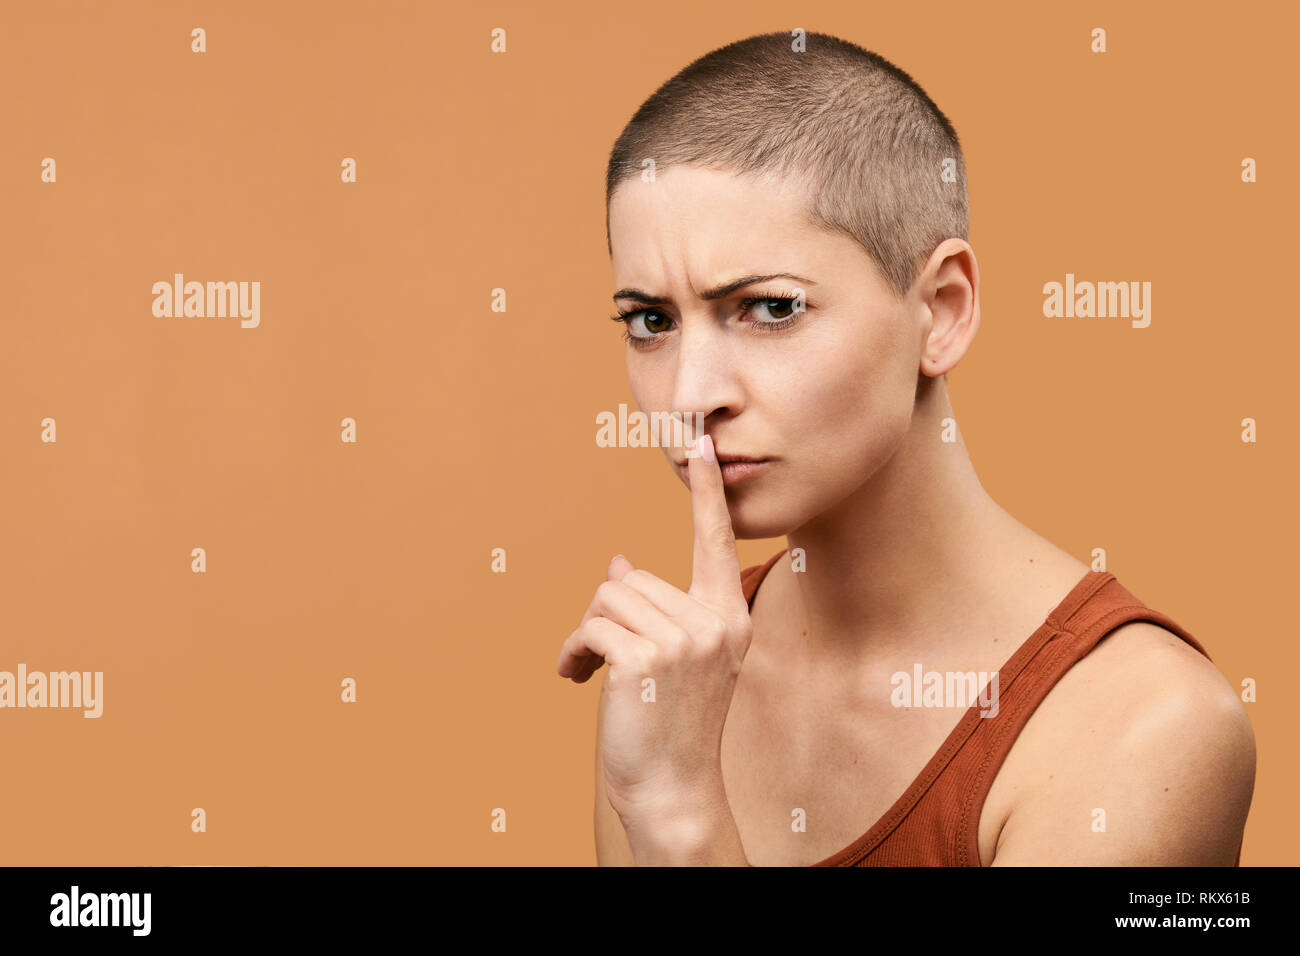 Attractive mid 30s woman pressing finger to lips as if asking to keep silent. Photo of young angry woman making Shhh gesture. - Stock Image